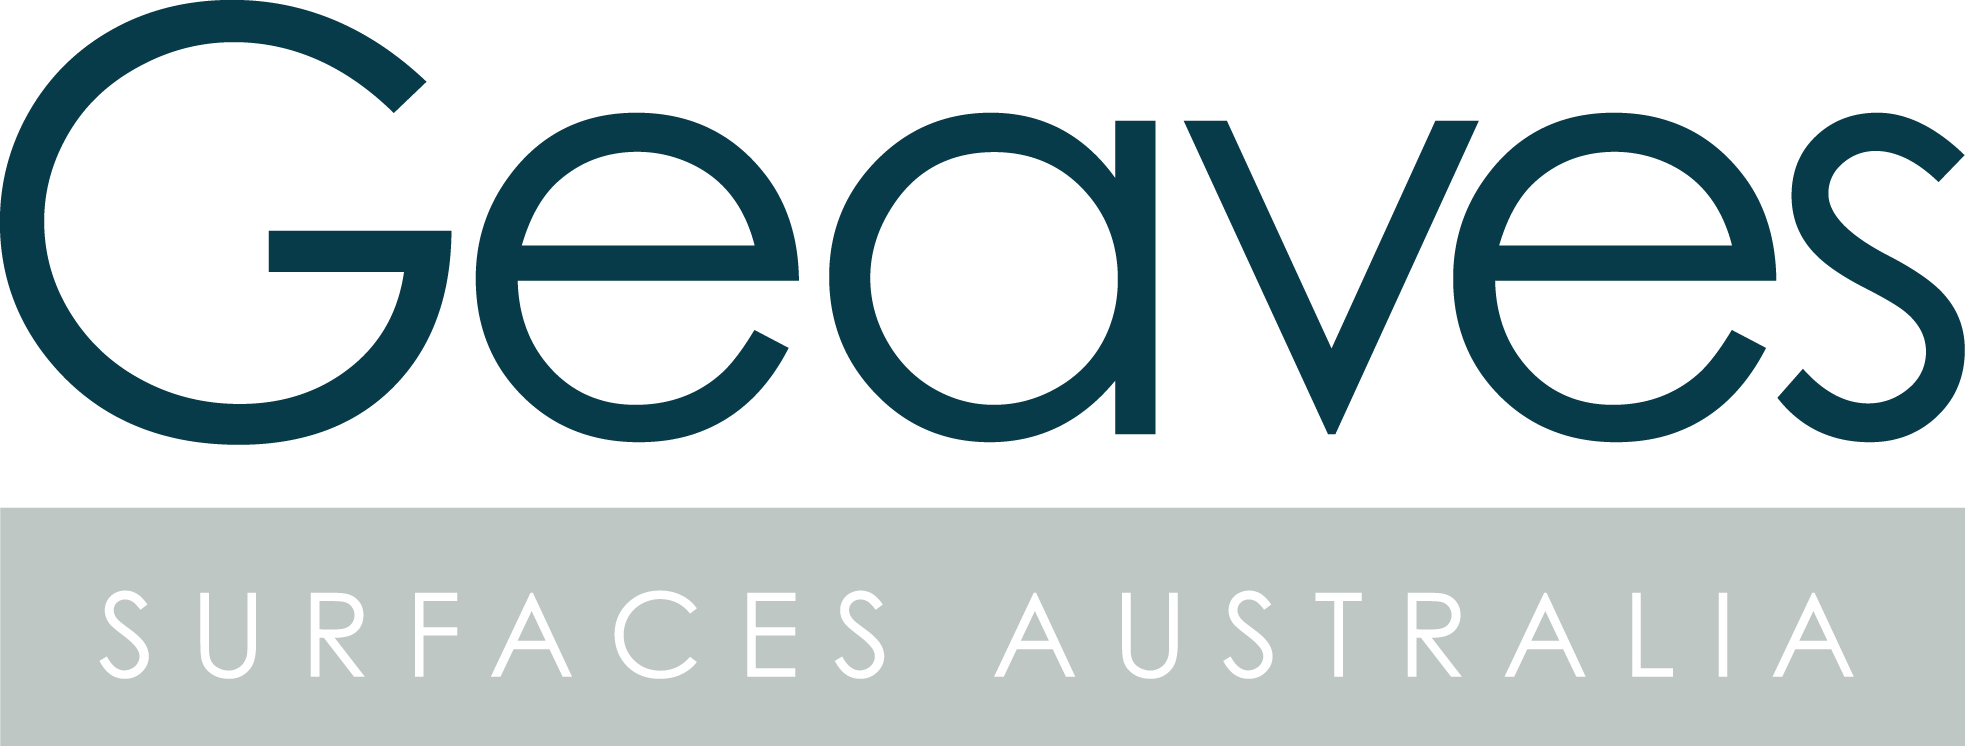 Geaves Surfaces - Australia